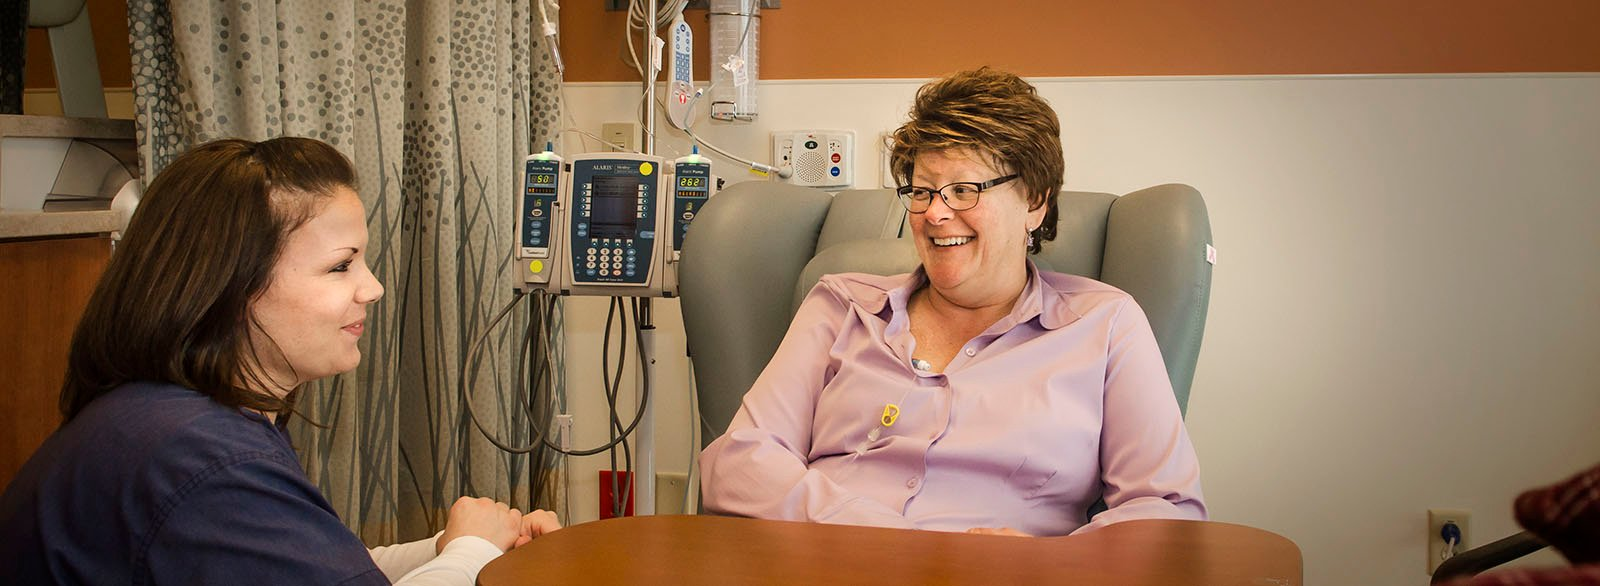 Cancer Center nurse with chemotherapy patient